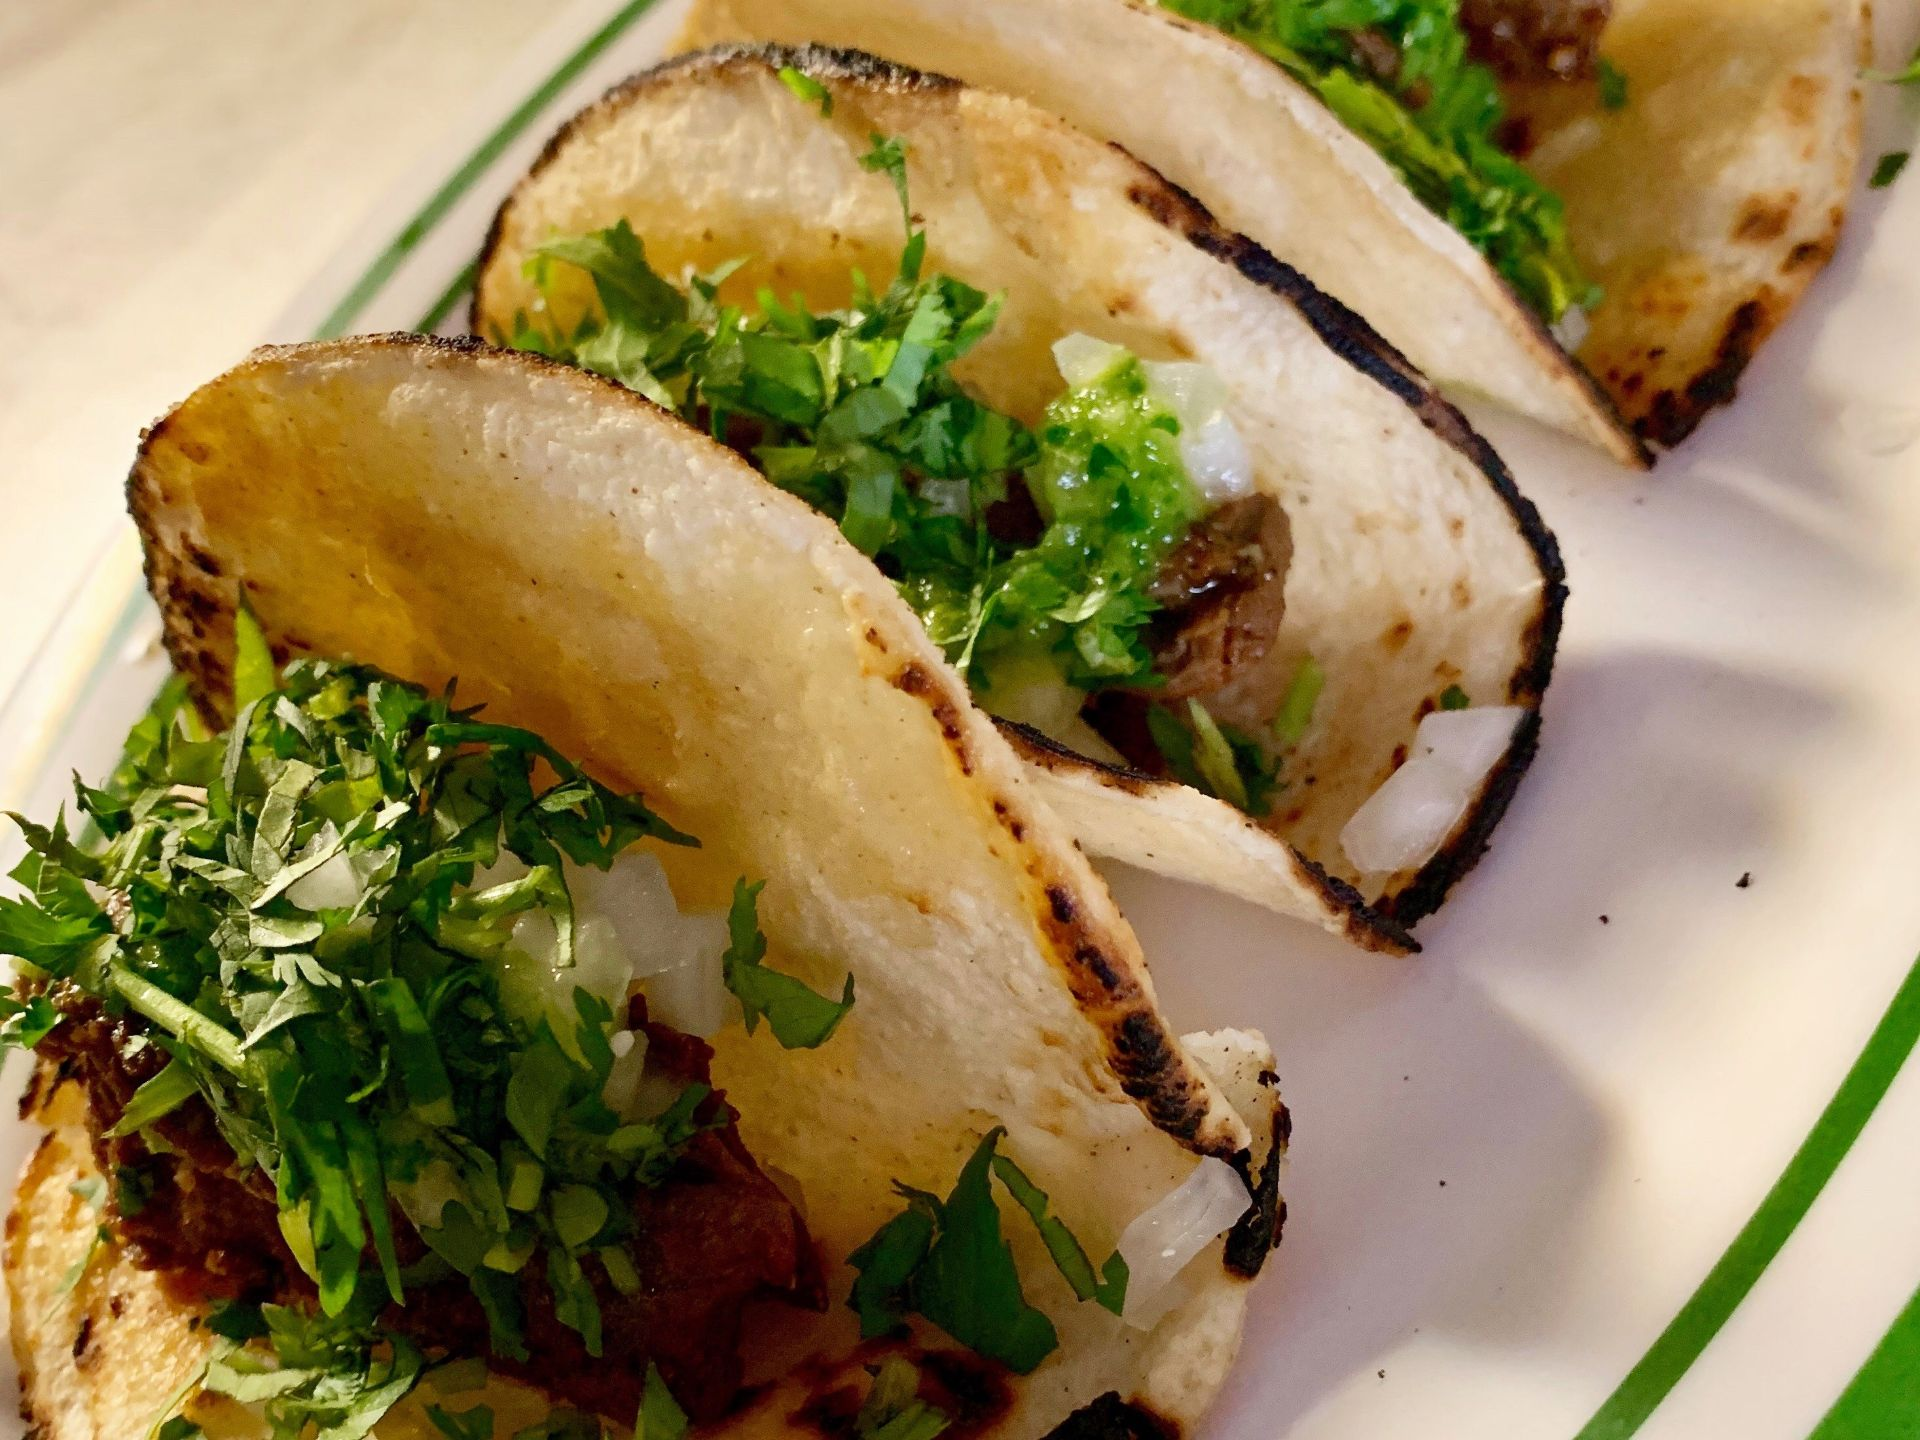 Steak street style tacos in corn tortilla shells on a plate